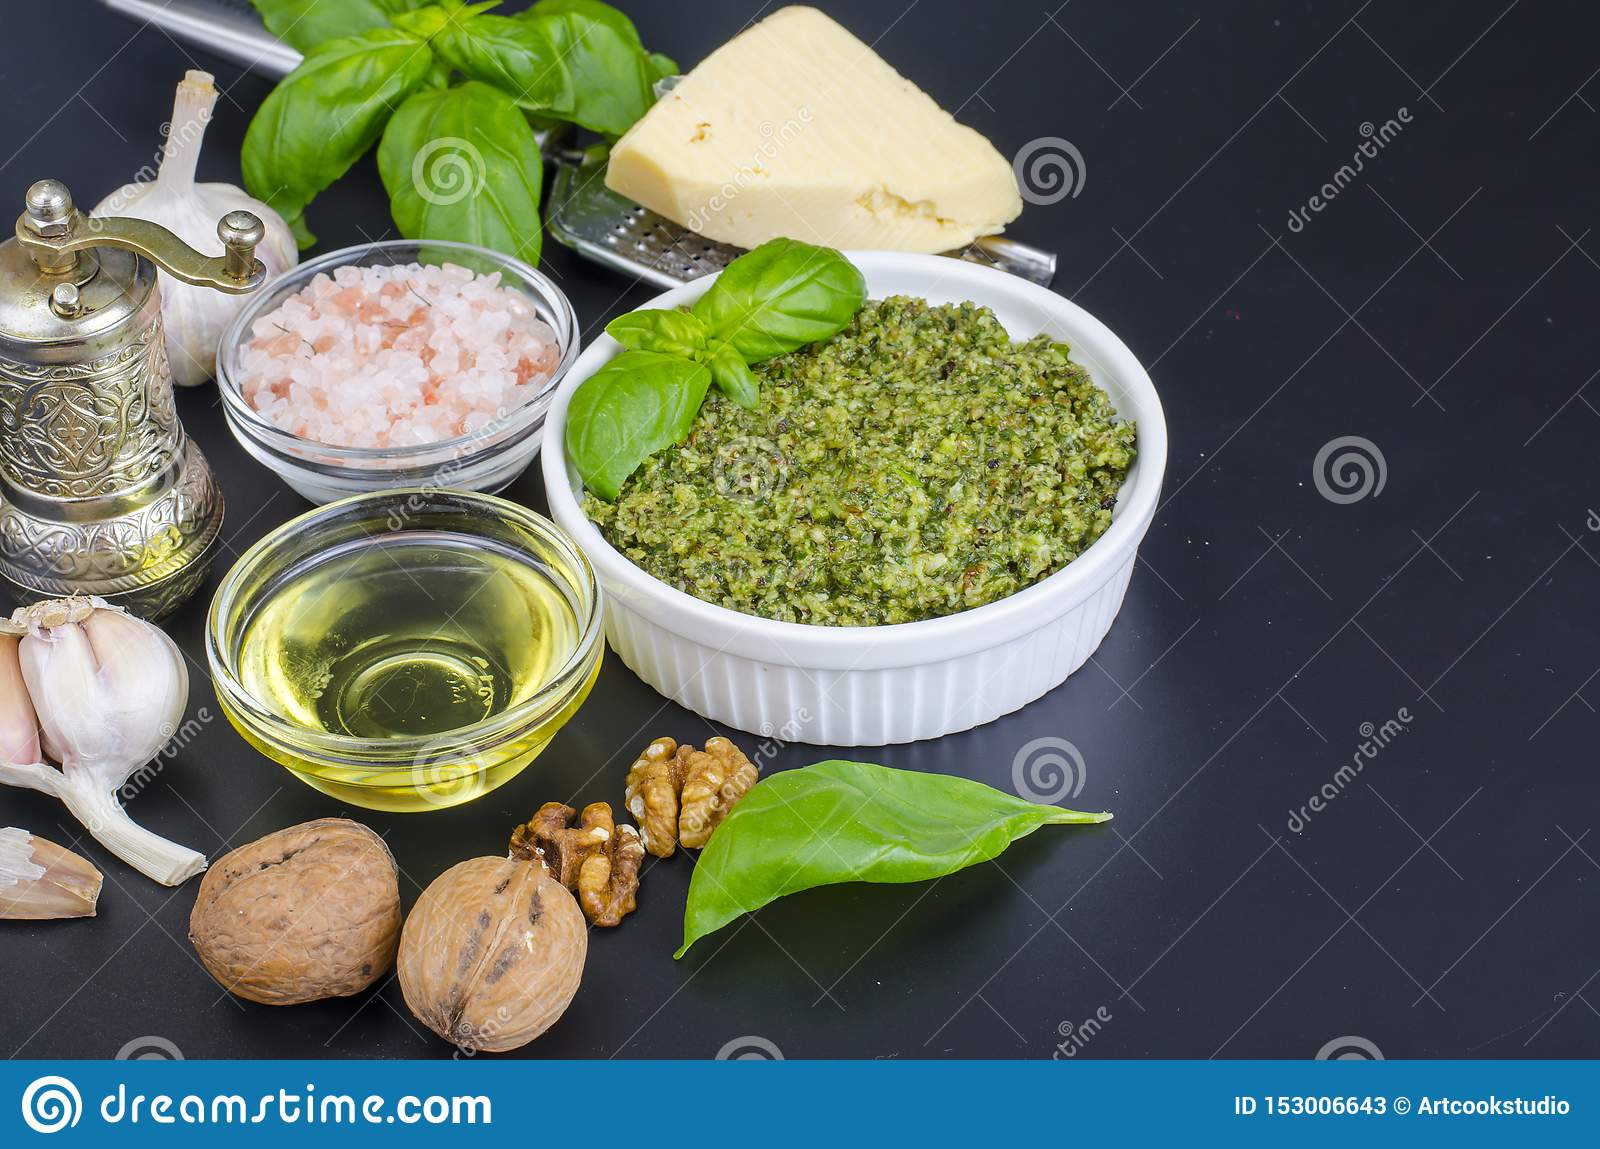 Ingredients for making pesto with walnut on black background